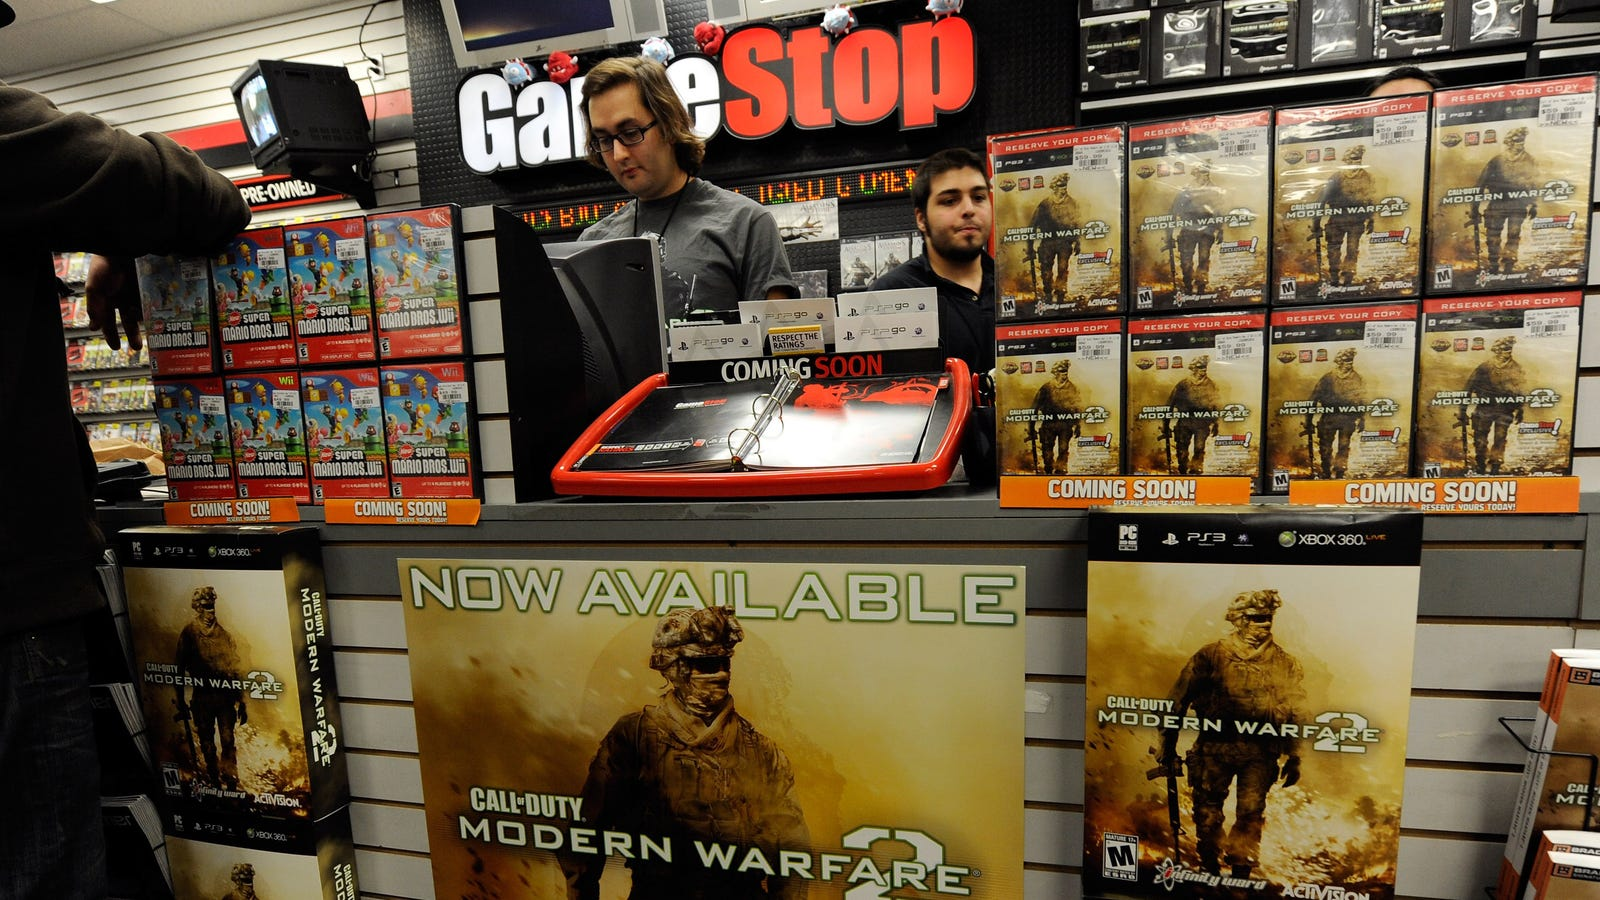 Bad Credit Credit Cards >> GameStop Customers' Credit Cards May Have Been Stolen ...